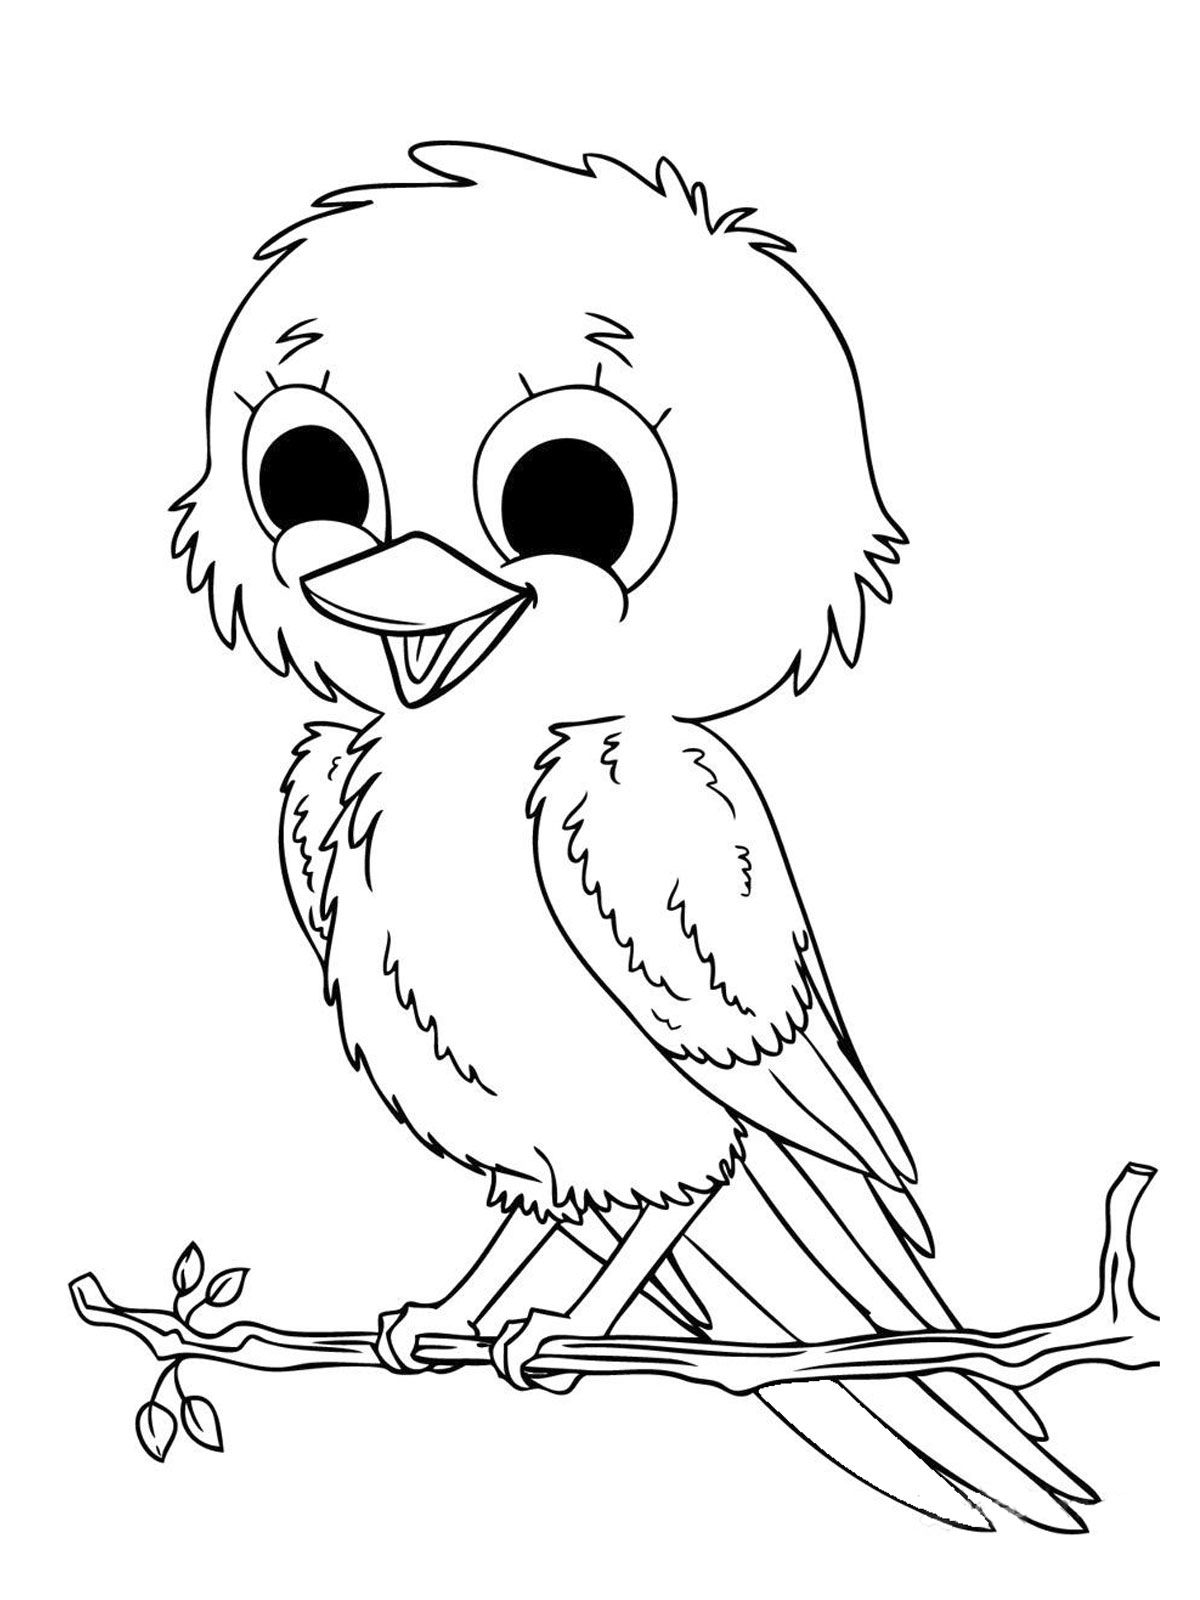 Free coloring pictures zoo animals - Free Coloring Pages Download All Baby Animals Coloring Pages Below Including Fawn Young Free Coloring